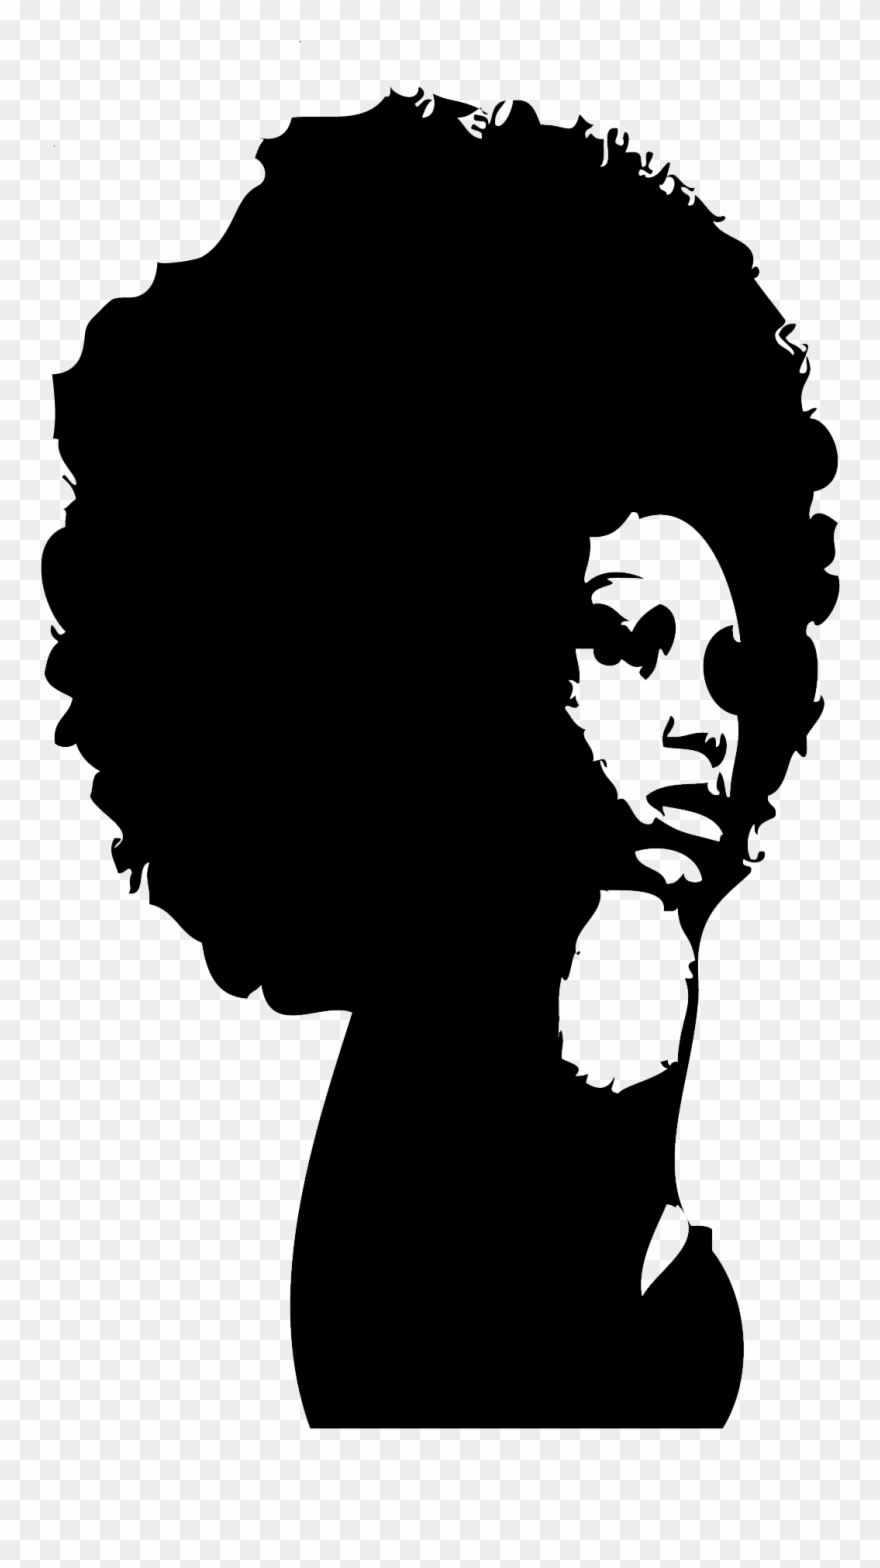 African american faces clipart png download Popular Images - Black Woman Face Silhouette Clipart (#498388 ... png download